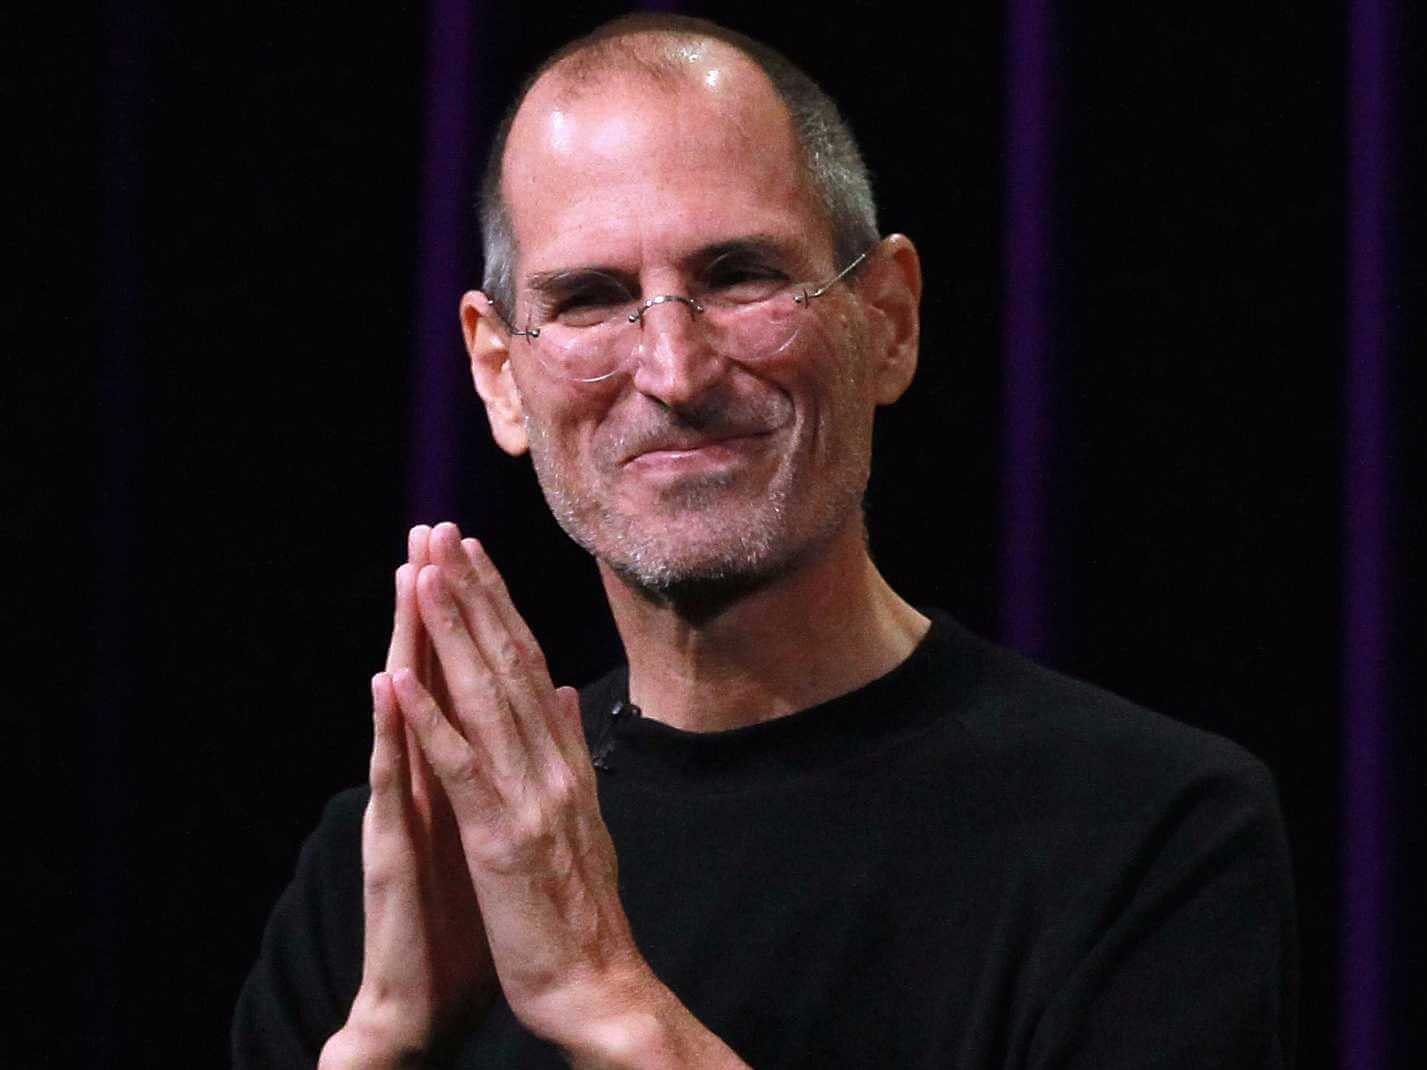 the-new-steve-jobs-documentary-is-a-blistering-takedown-that-is-deeply-unflattering